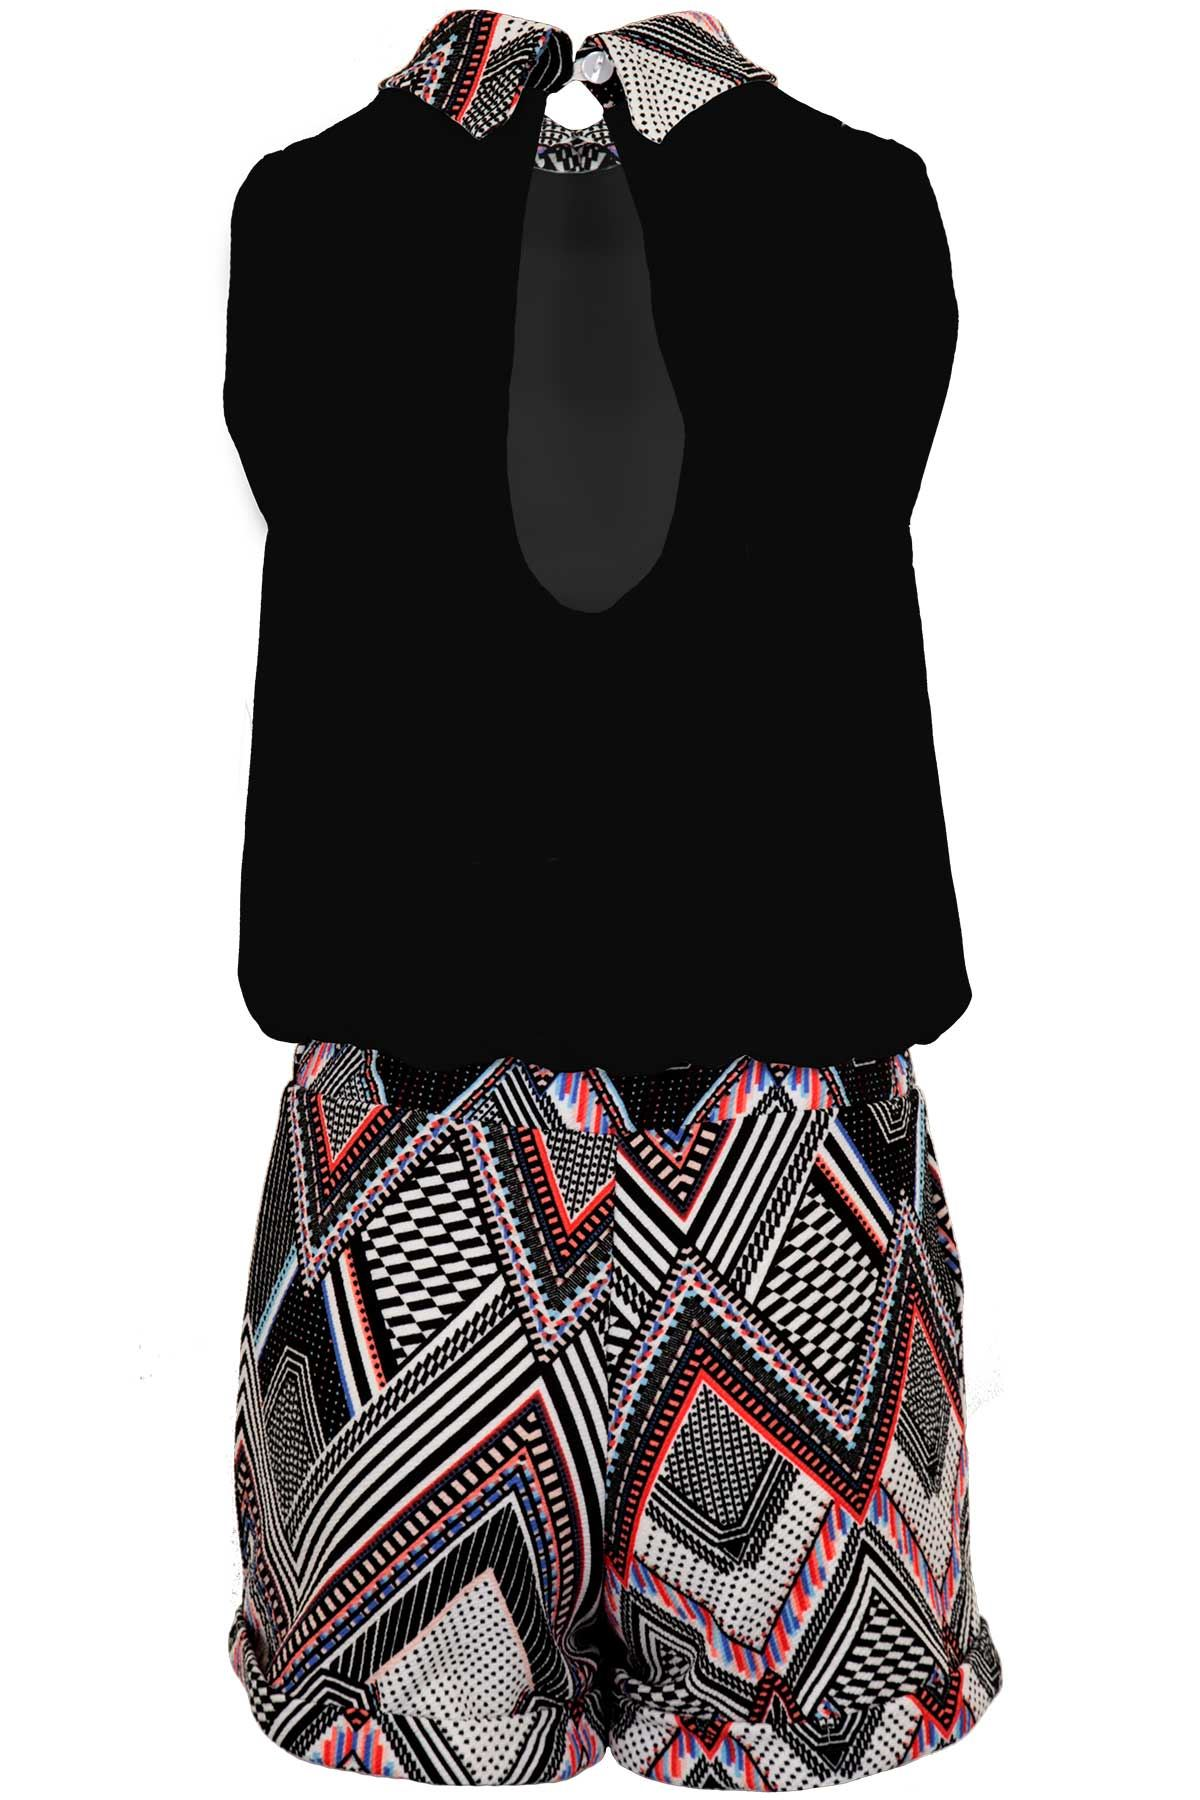 Womens Lined Chiffon Peter Aztec Contrast Pan Collar Romper All In One Playsuit